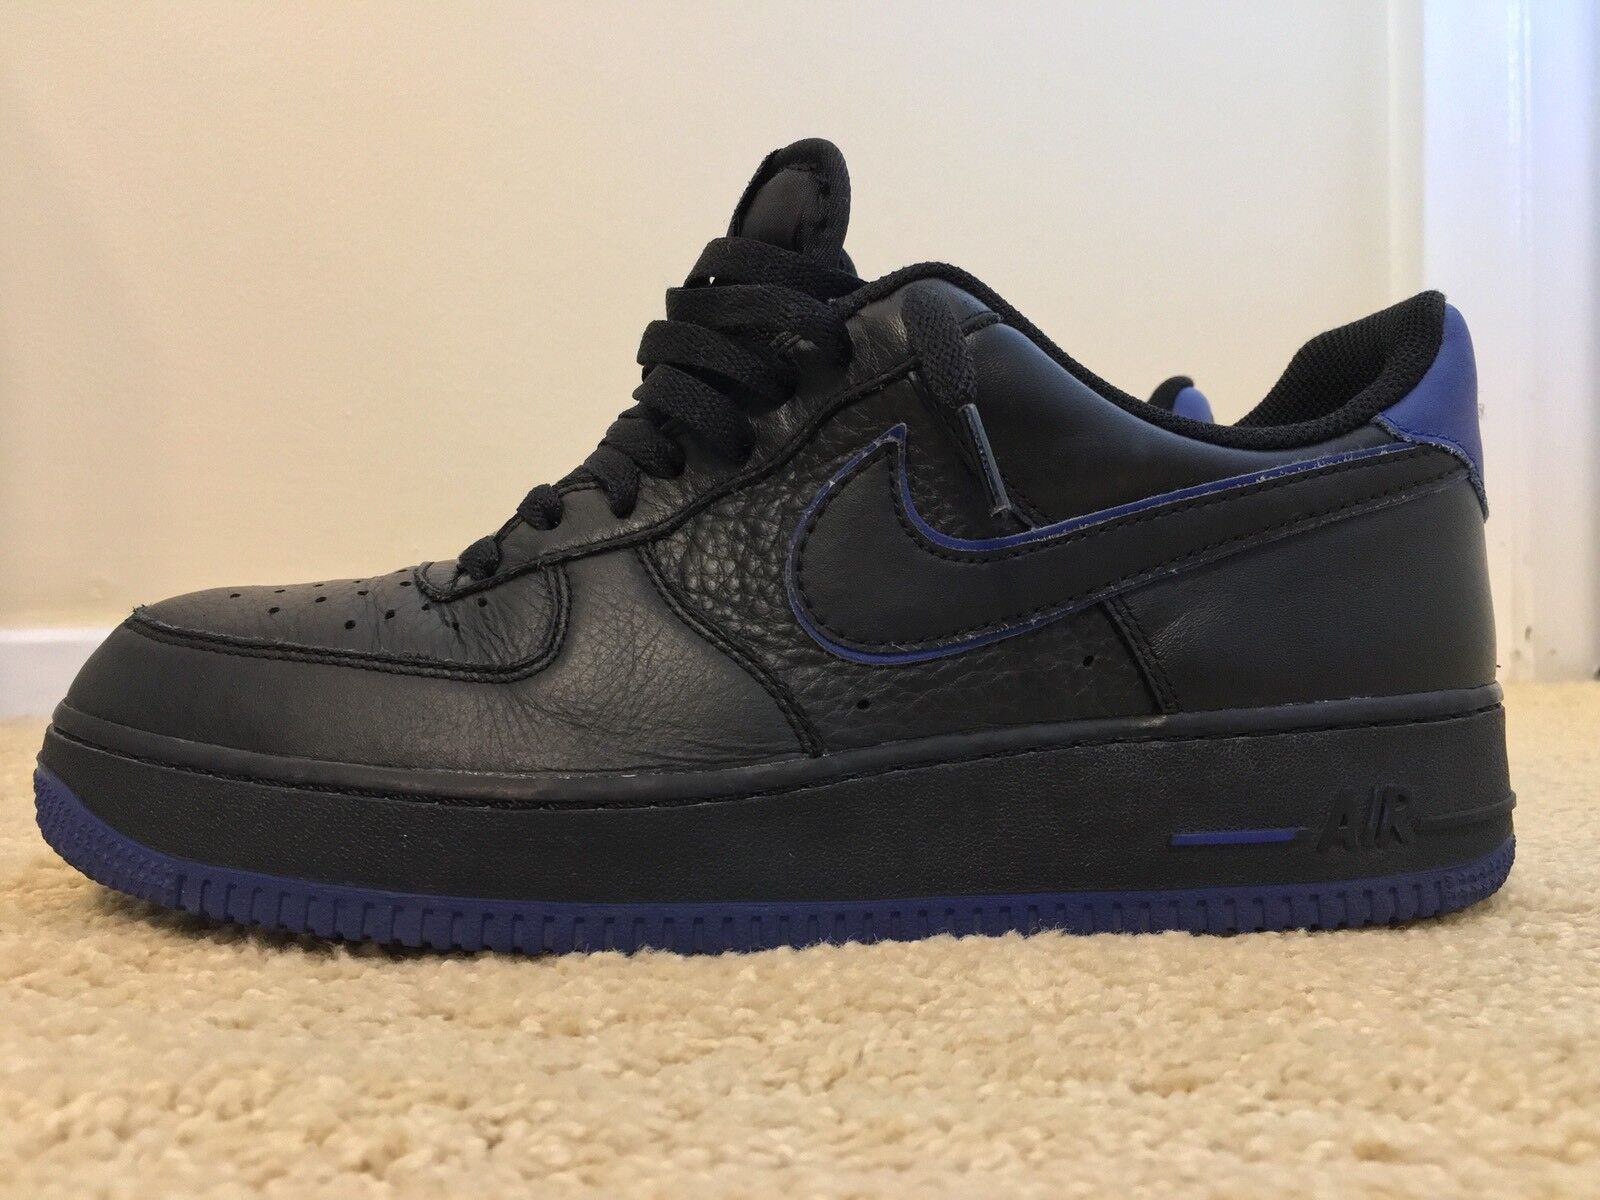 Nike Air Obliger 1 Casual One AF-1 488298-006 noir/Bleu homme Casual 1 chaussures, e3afa4